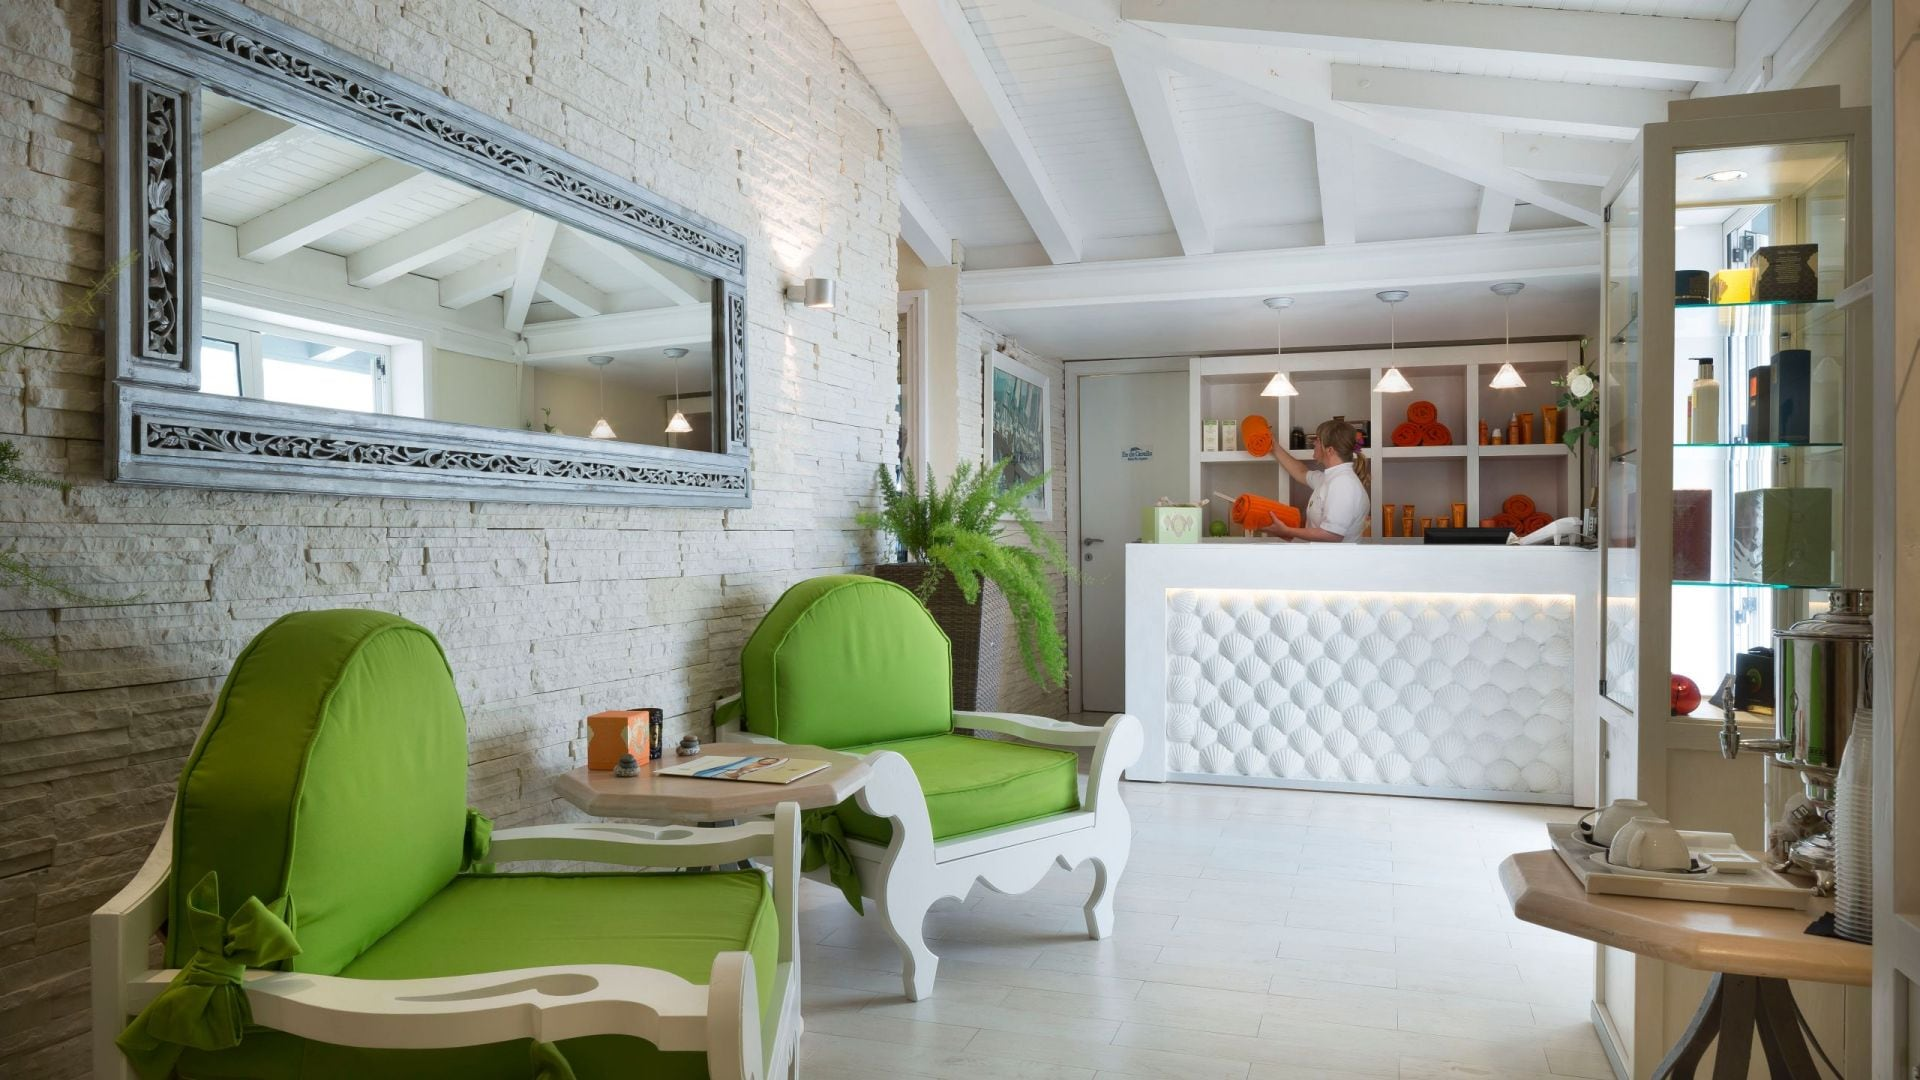 Hotel and Spa des Pecheurs Spa